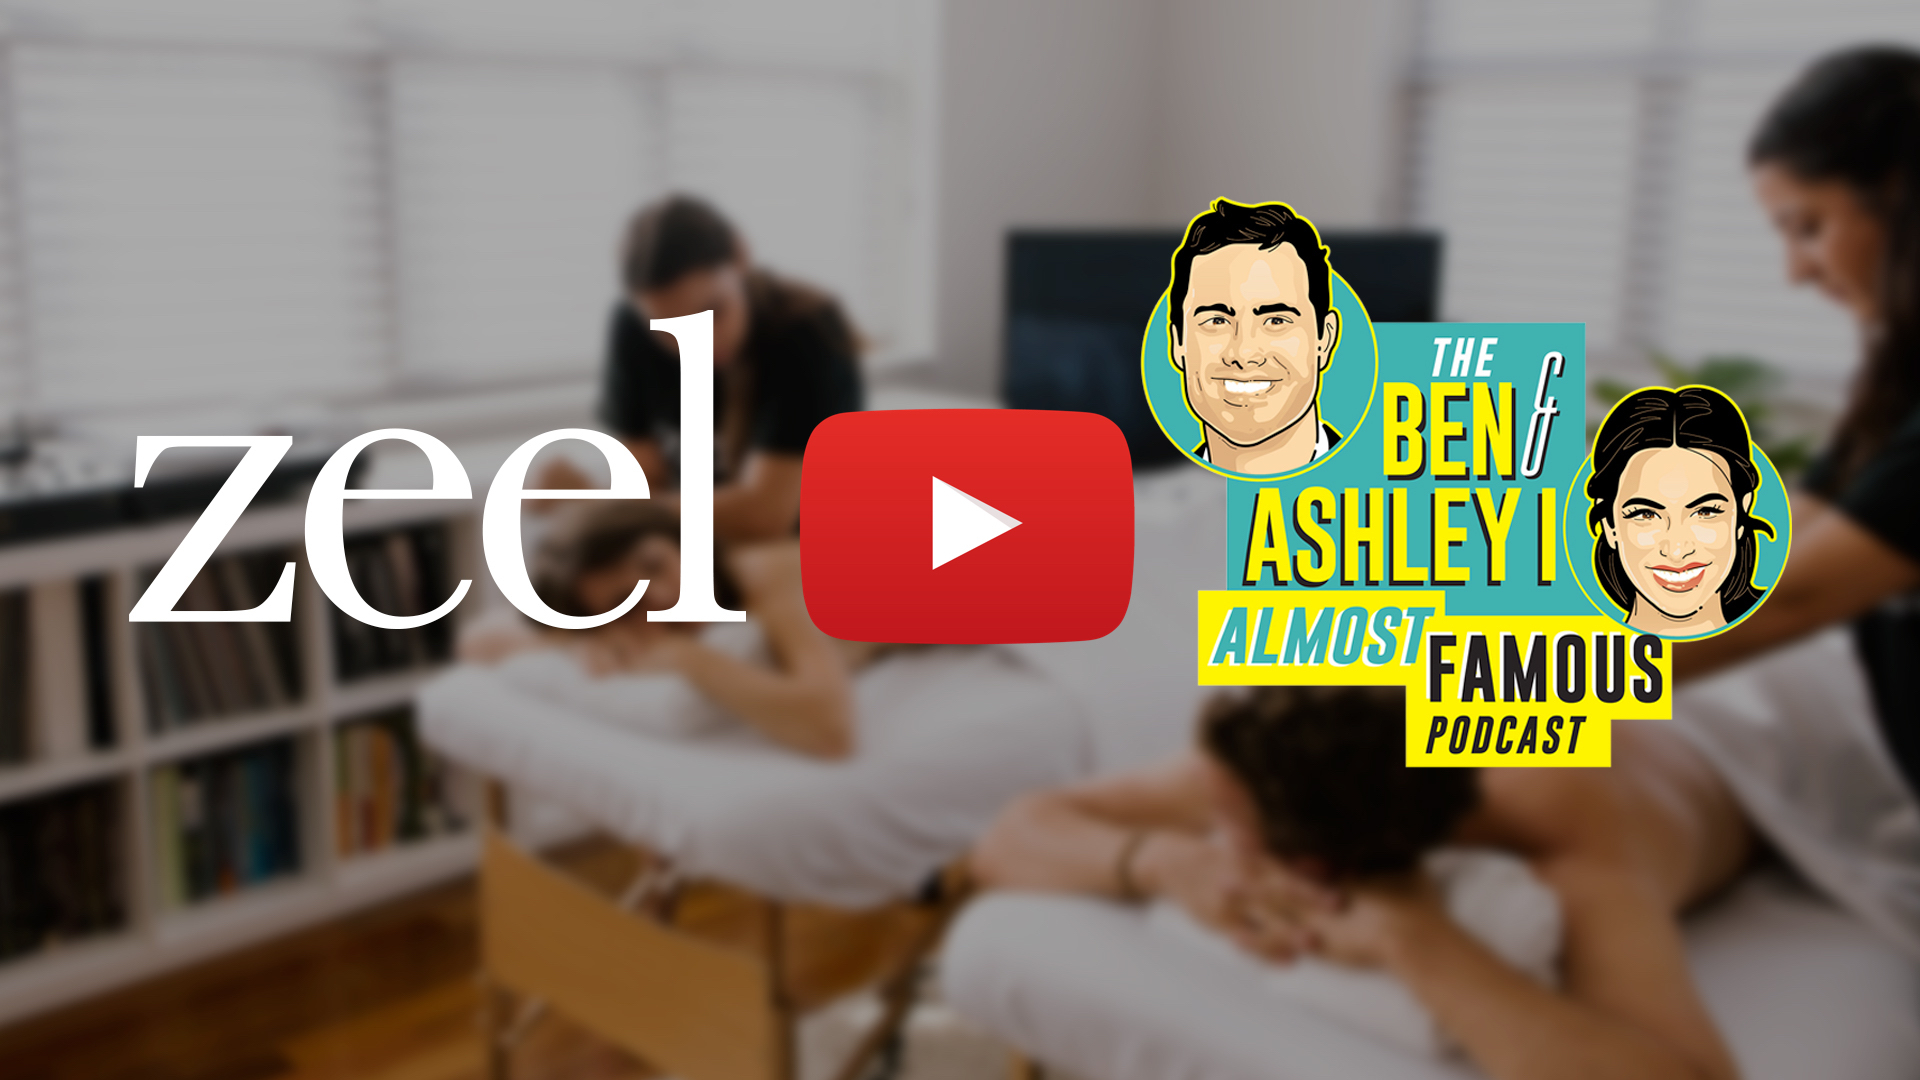 The Bachelor's Ben Higgins and Ashley Iaconetti Love Zeel Massages